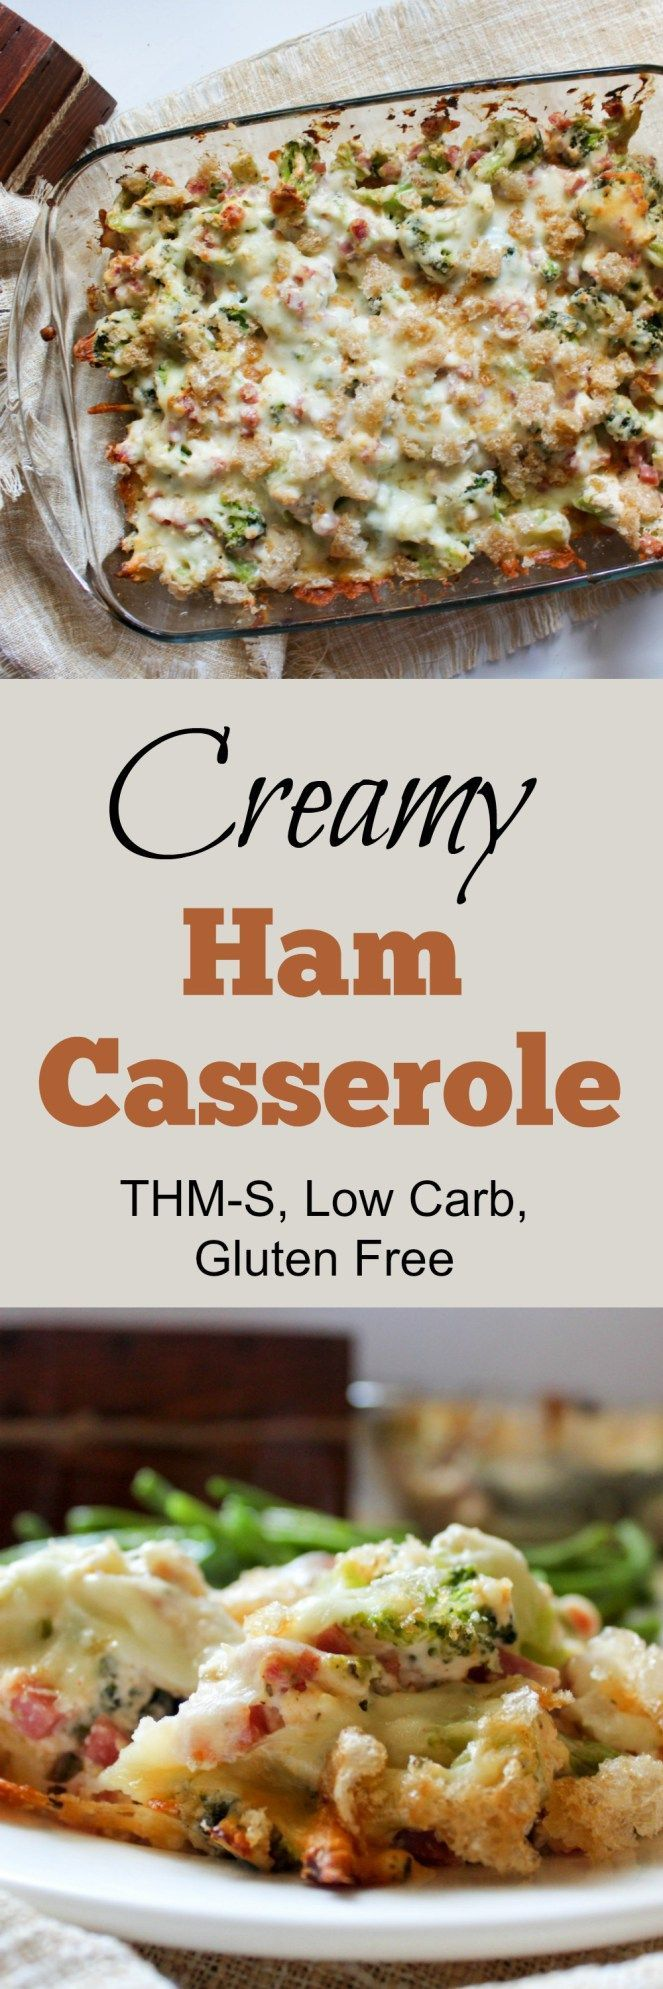 1013 best low carb comfort foods keto lchf images on pinterest creamy ham casserole thm s low carb gluten free gluten free recipes australia forumfinder Gallery